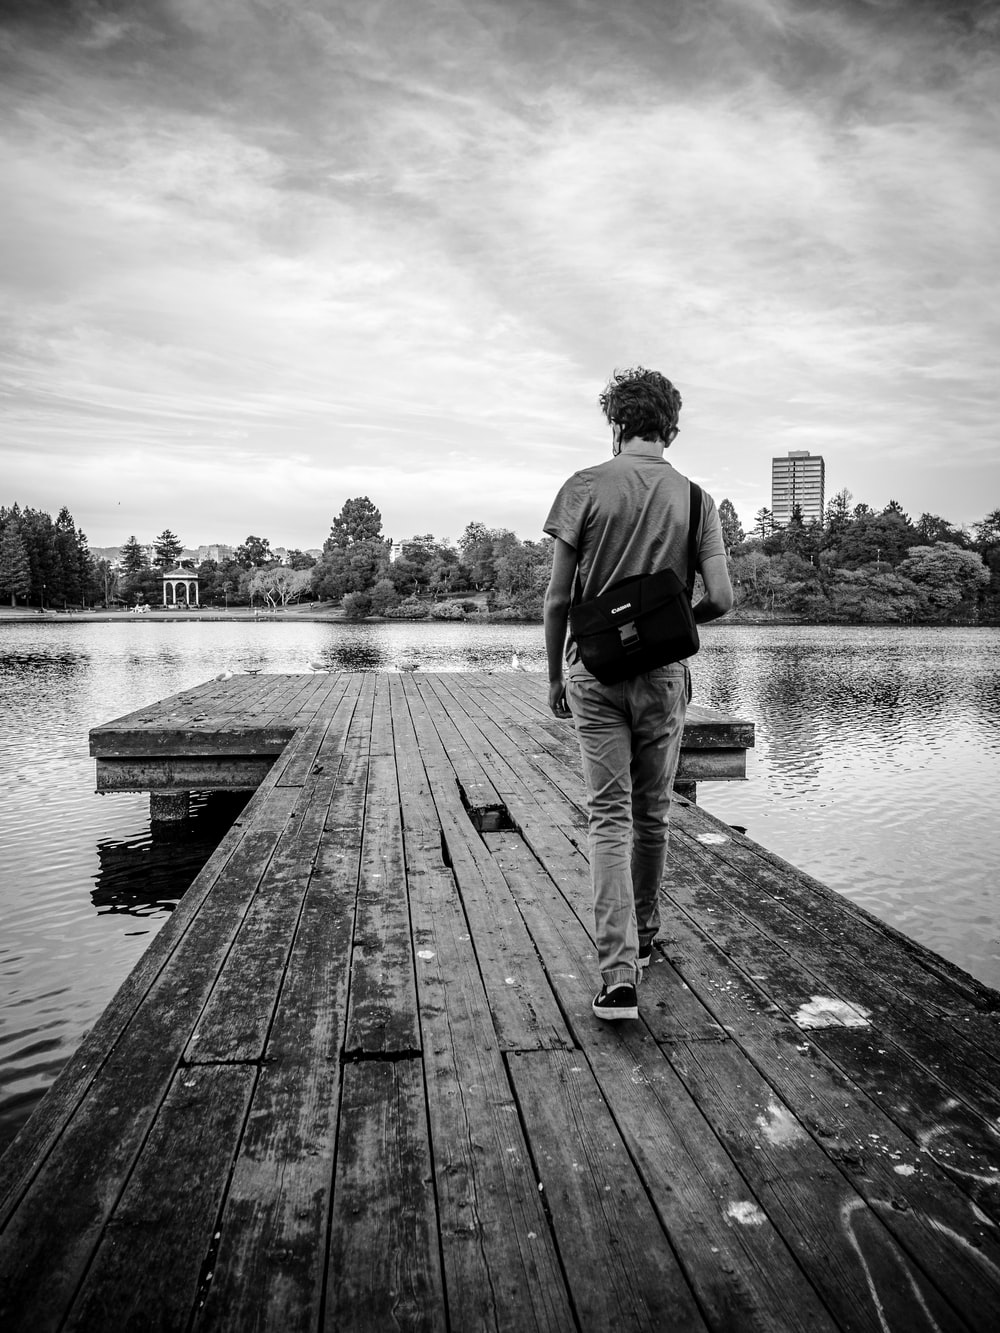 man in black jacket and pants standing on wooden dock in grayscale photography